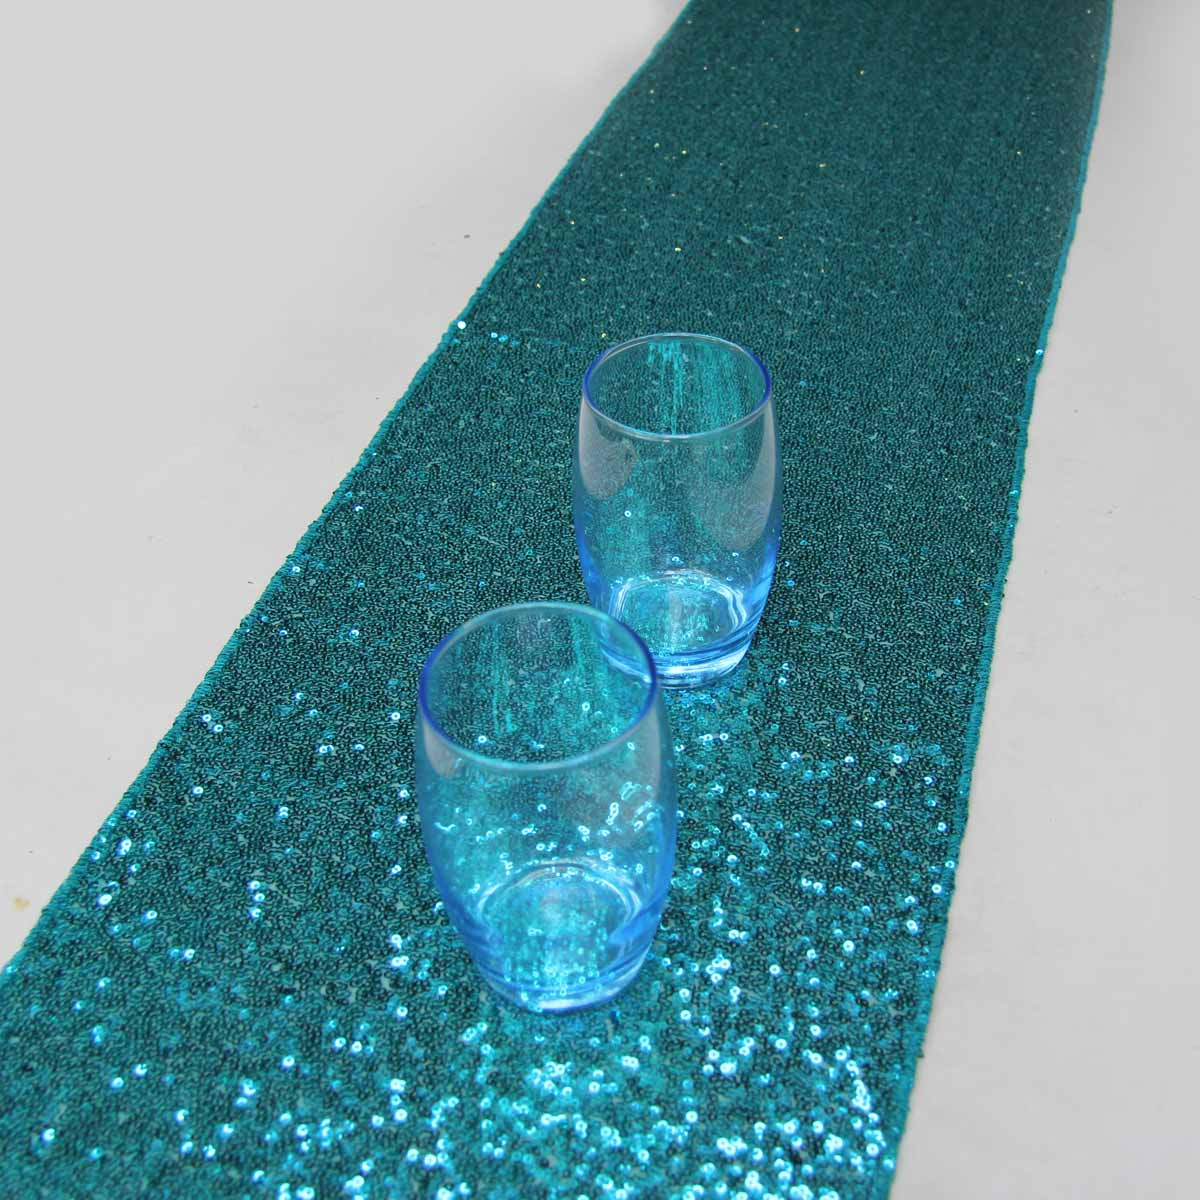 12u0027u0027x108u0027u0027/30cmx274cm Luxury Turquoise Sequin Table Runner Wedding Party  Table Decoration Solid Color Table Runners